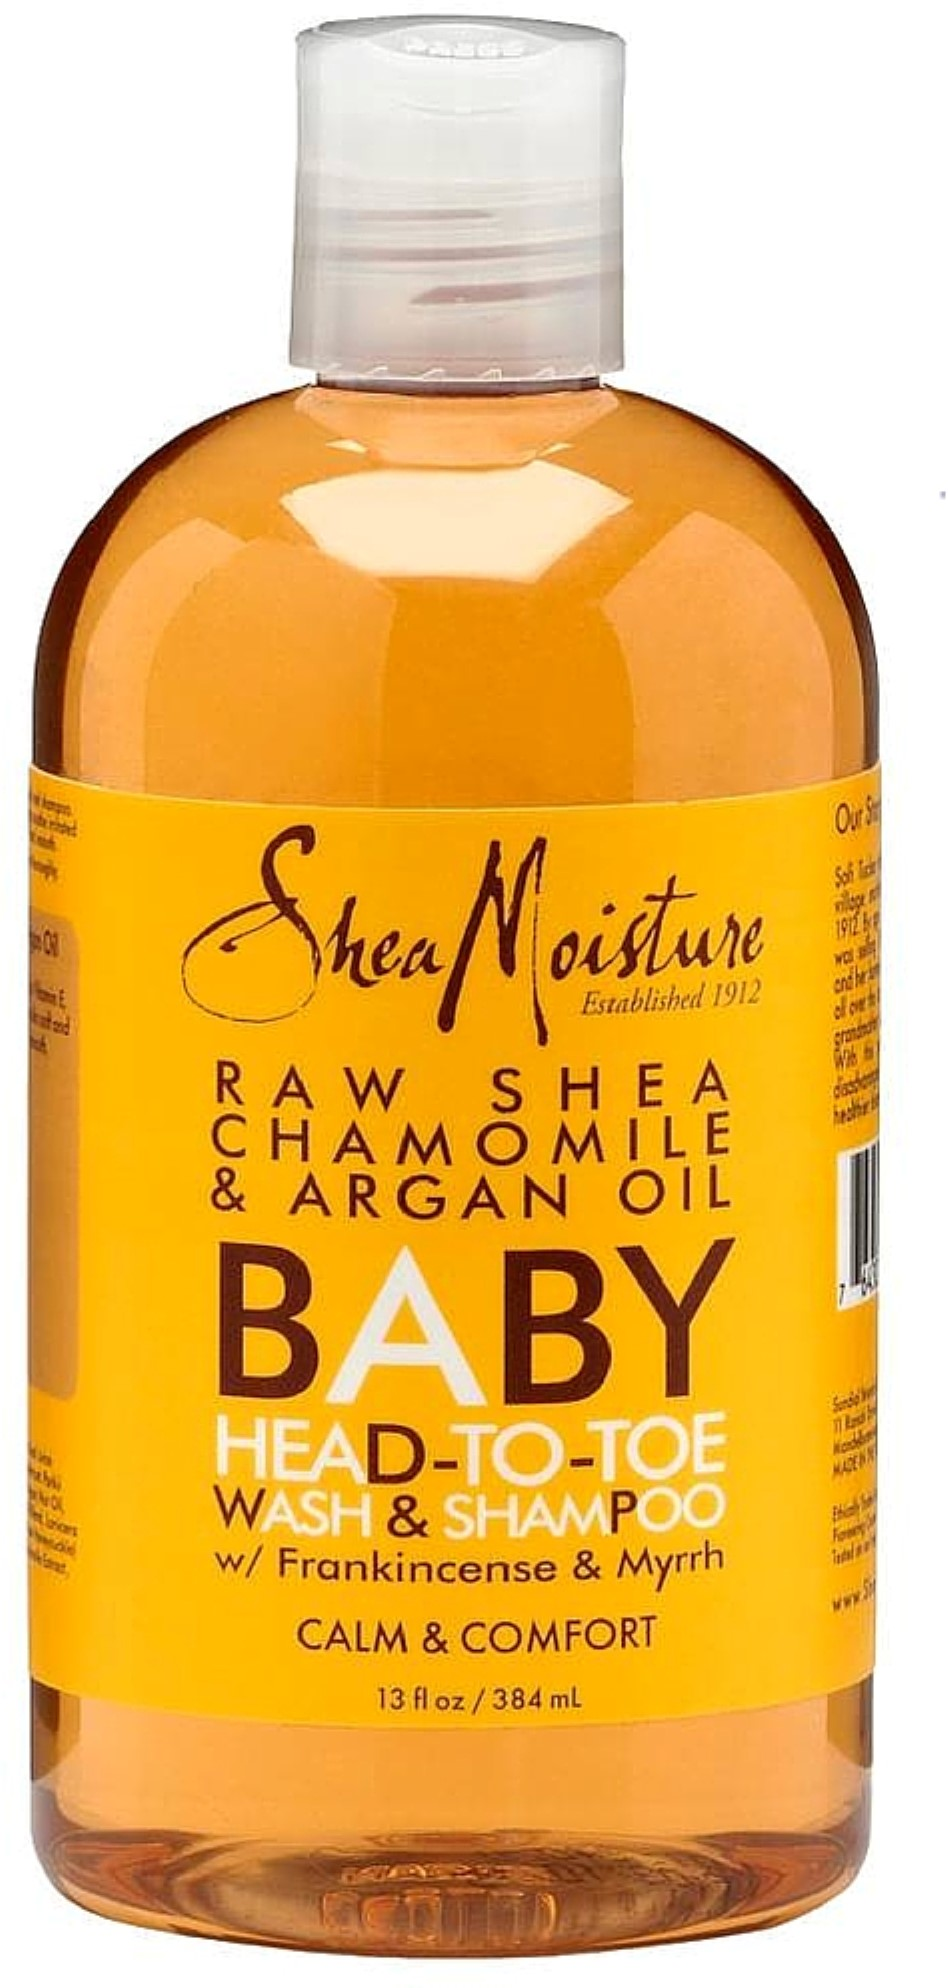 Click here to buy Shea Moisture Raw Shea Chamomile & Argan Oil Baby Head-To-Toe Wash & Shampoo 13 oz (Pack of 3) by SheaMoisture.